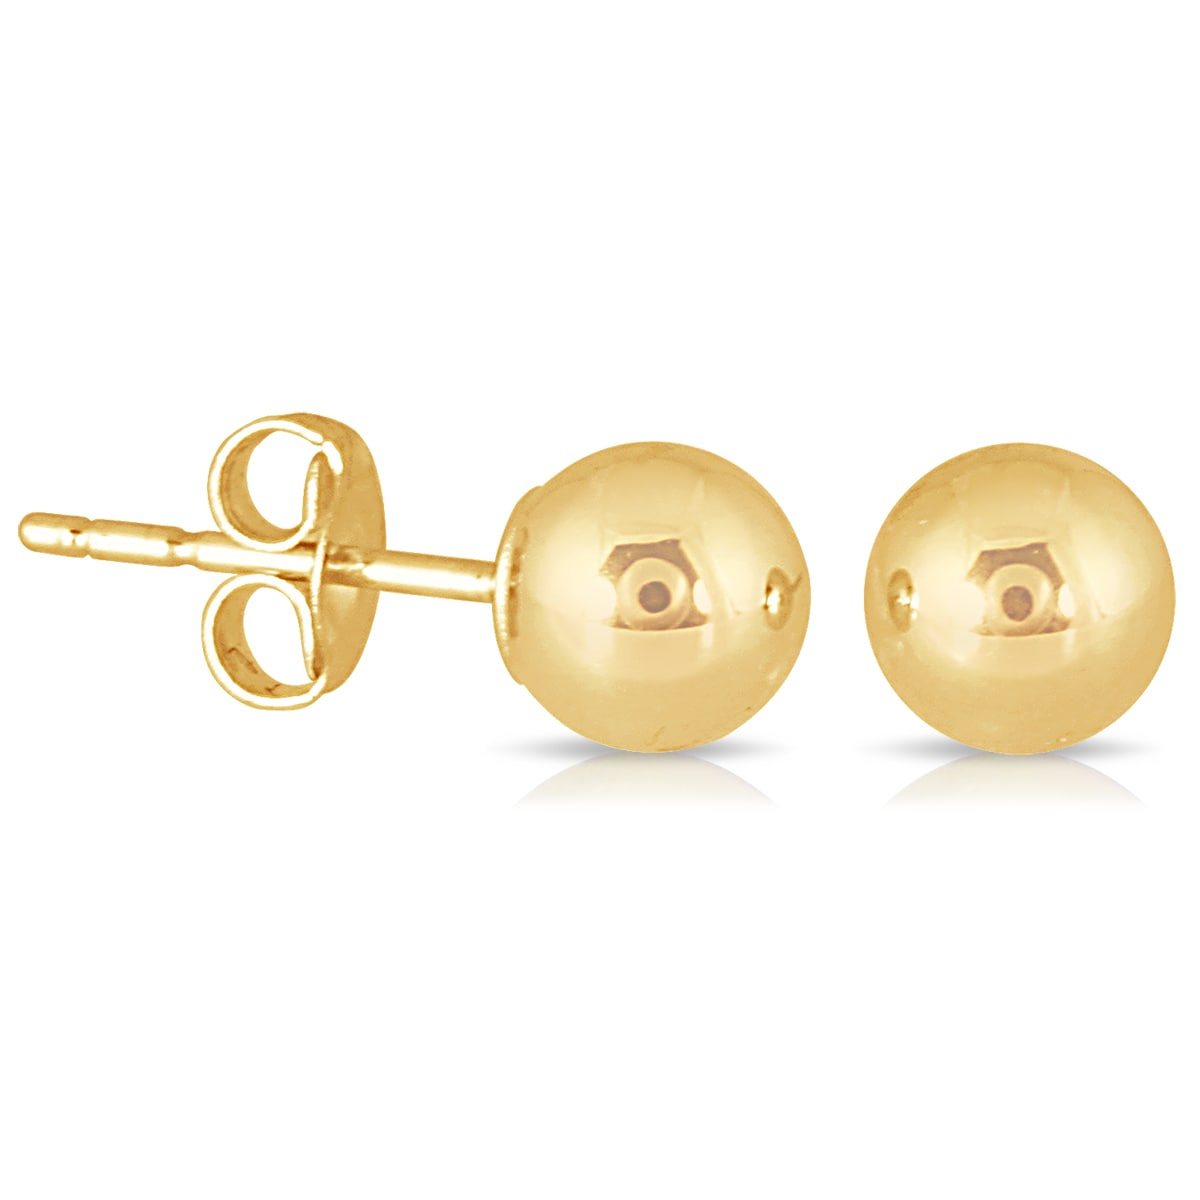 a2ef85386 Shop Marquee Jewels 10k Yellow Gold 5-millimeter Ball Stud Earrings - On  Sale - Free Shipping On Orders Over $45 - Overstock - 12637413